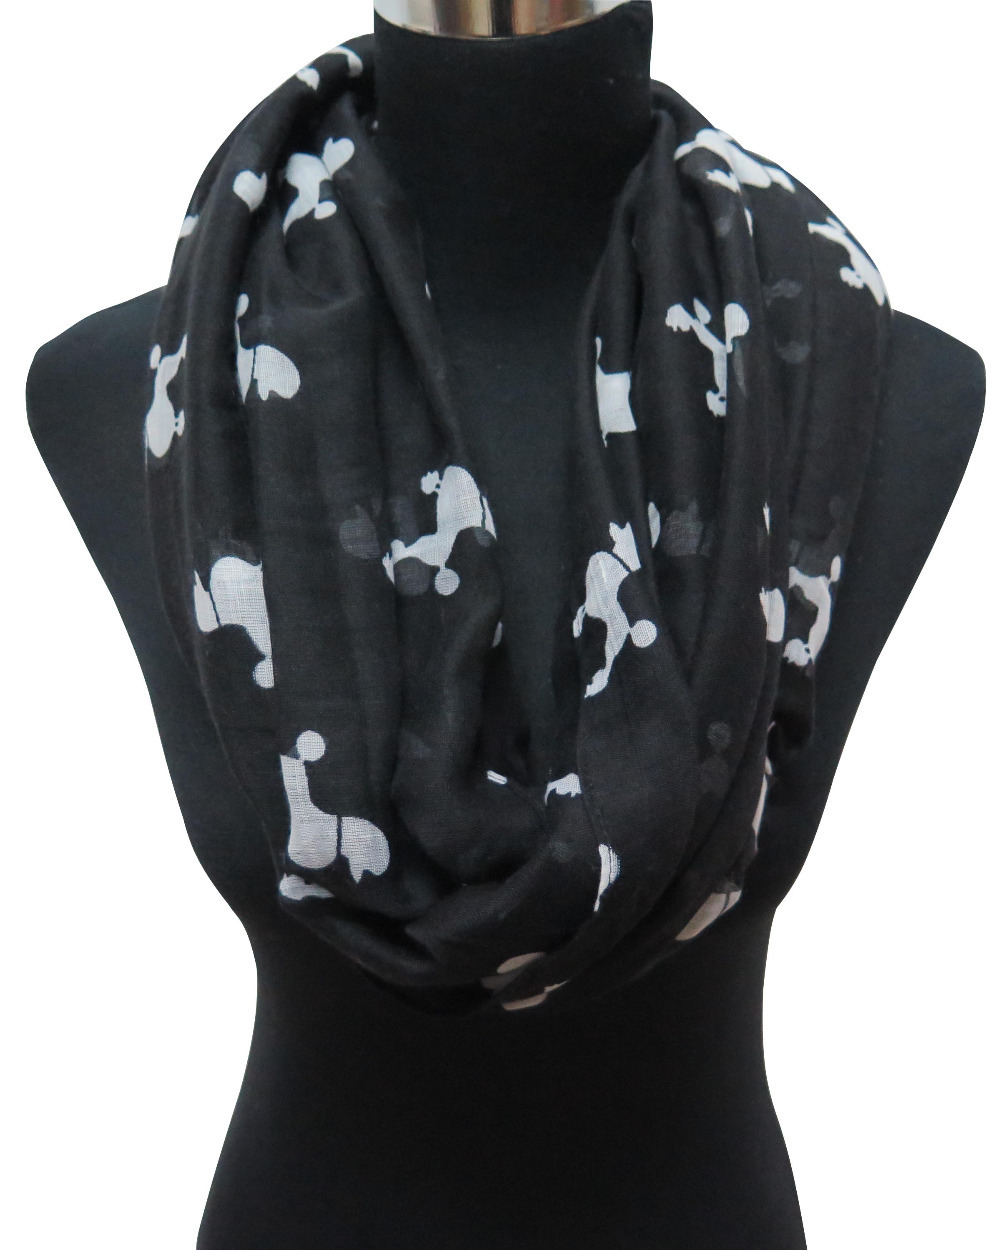 10pcs lot Poodle Dog Animal Print Women s Infinity Scarf Free Shipping